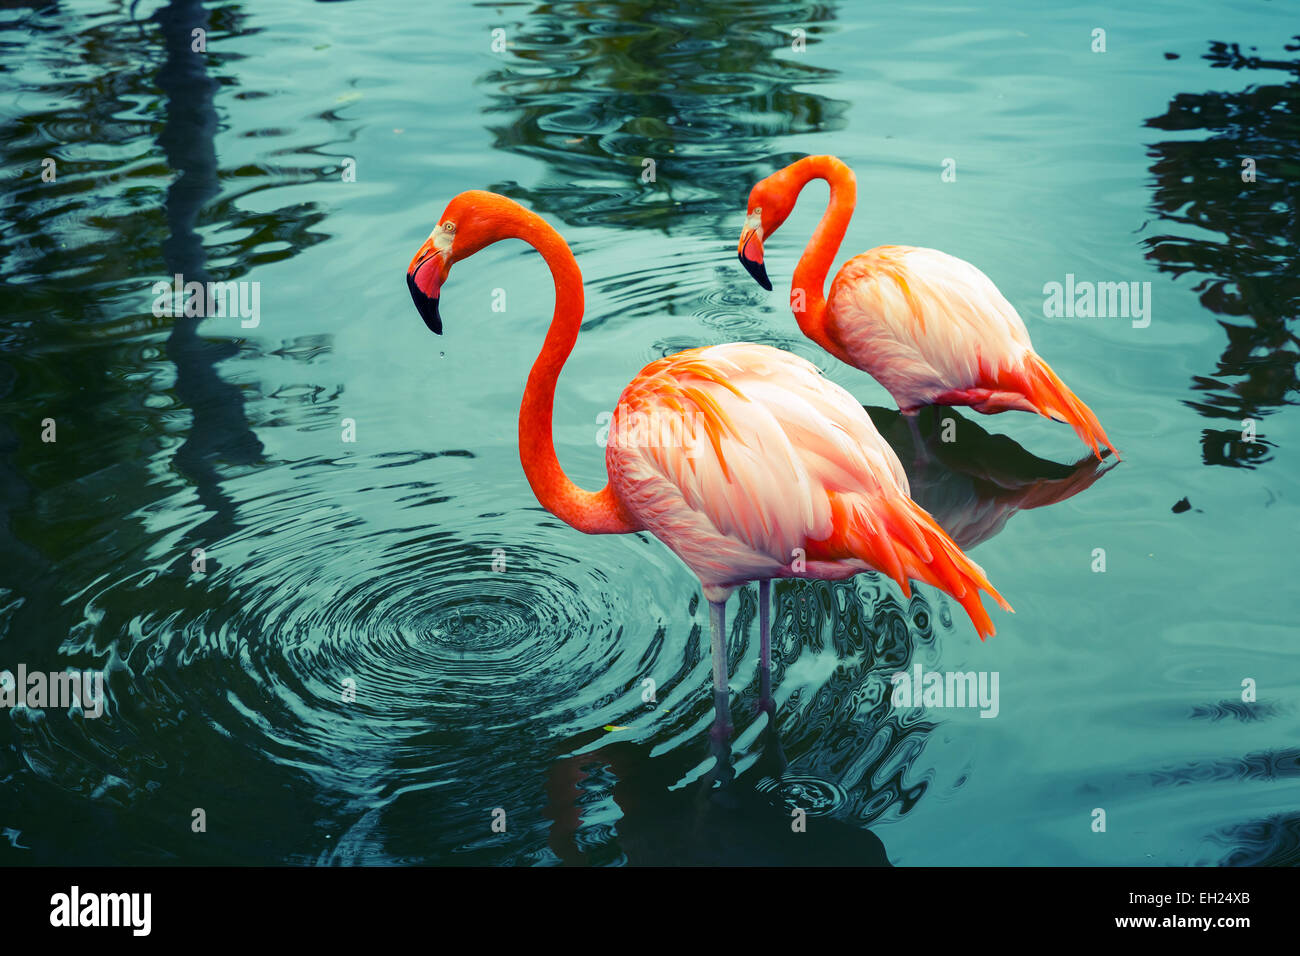 Two pink flamingos walking in the water with reflections. Vintage stylized photo, with colorful tonal correction - Stock Image